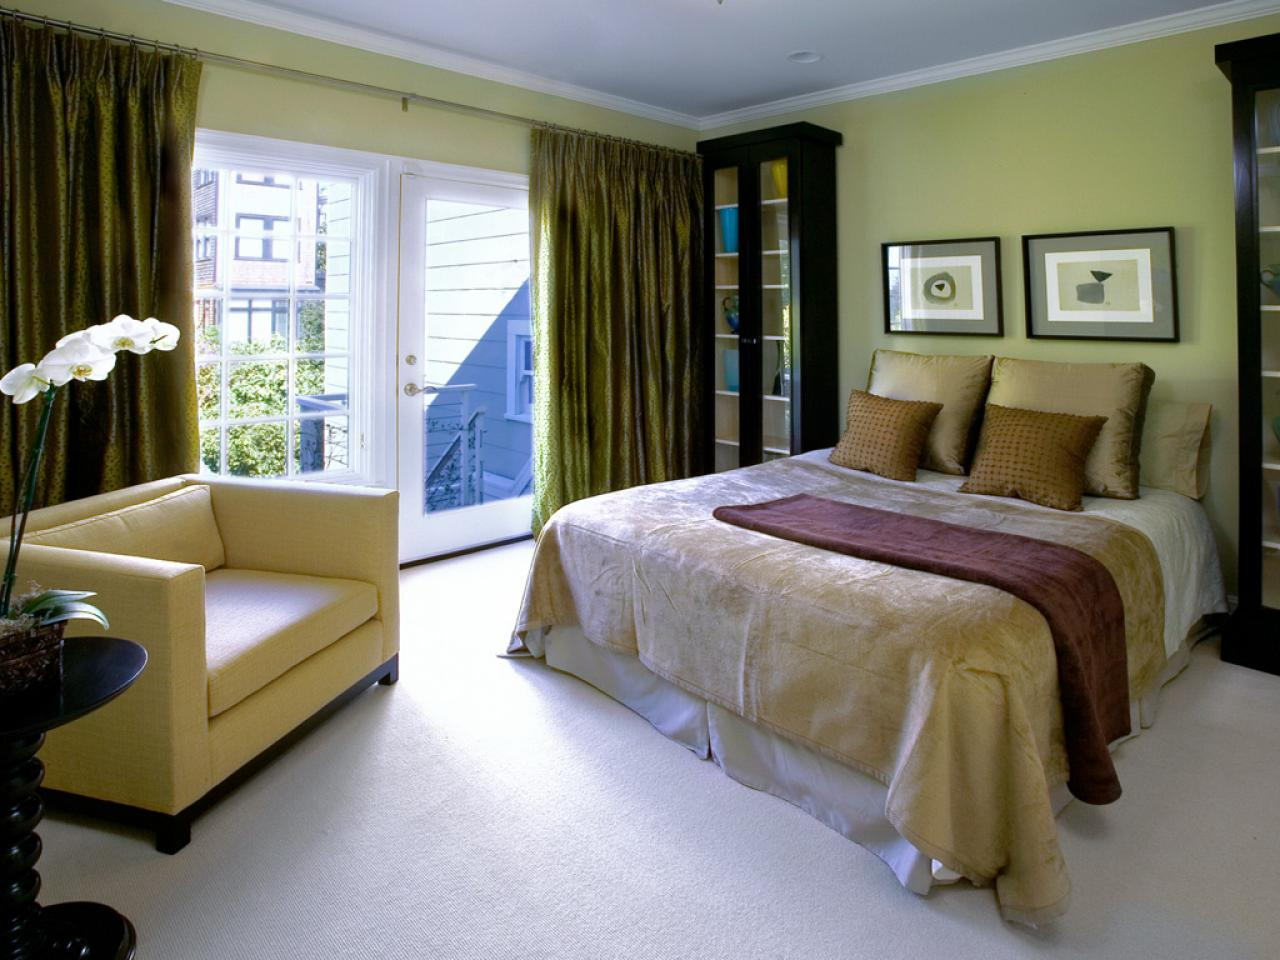 Wall Colors Ideas bedroom paint color ideas PMIJBDR